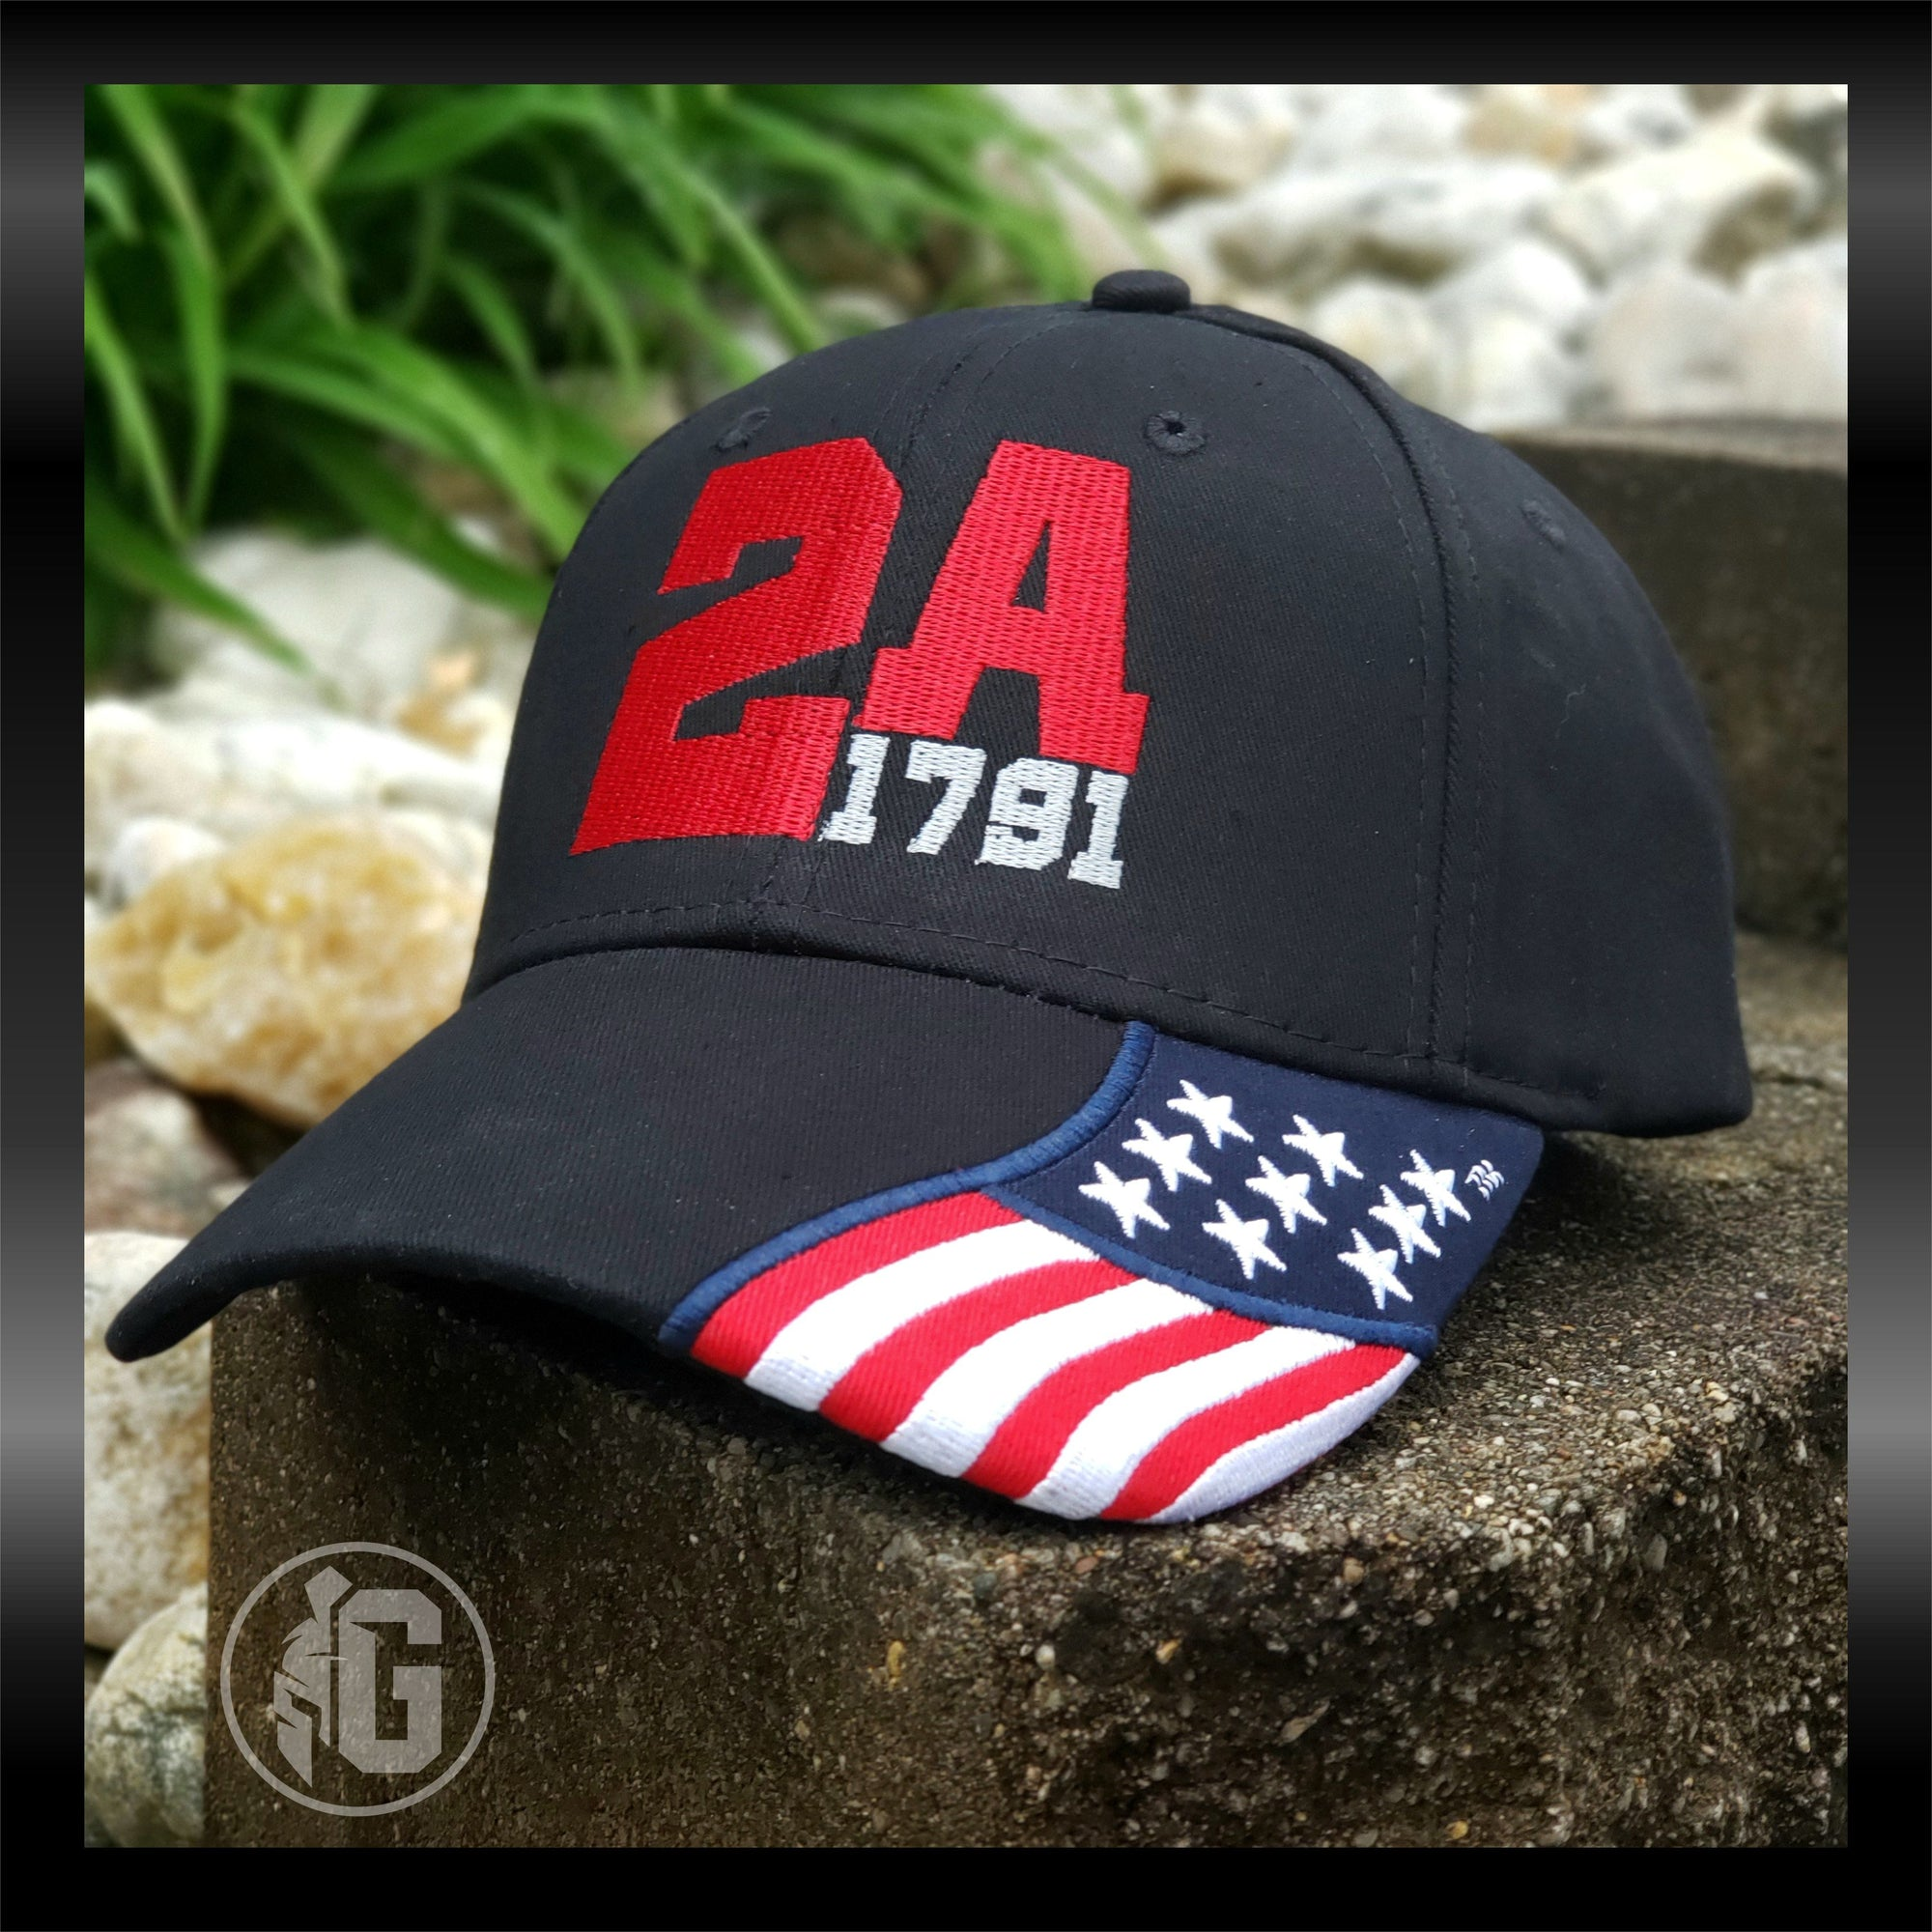 2A 1791 W/ American Flag on Bill Embroidered Hat